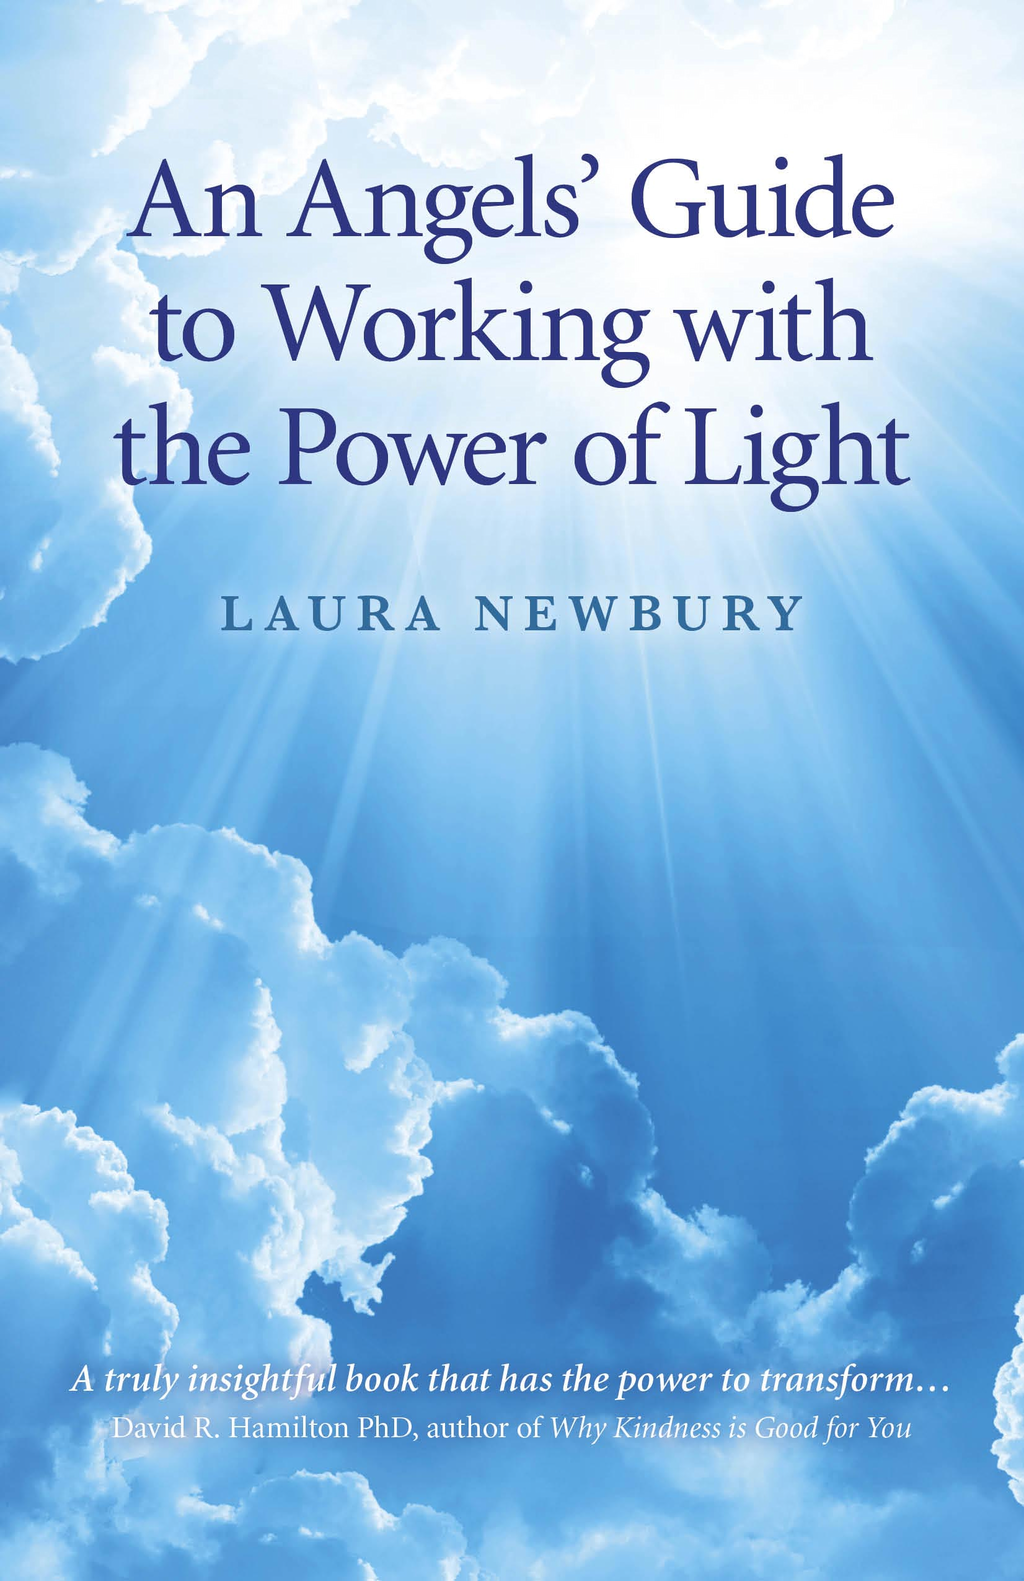 An Angels' Guide to Working with the Power of Light By: Laura Newbury